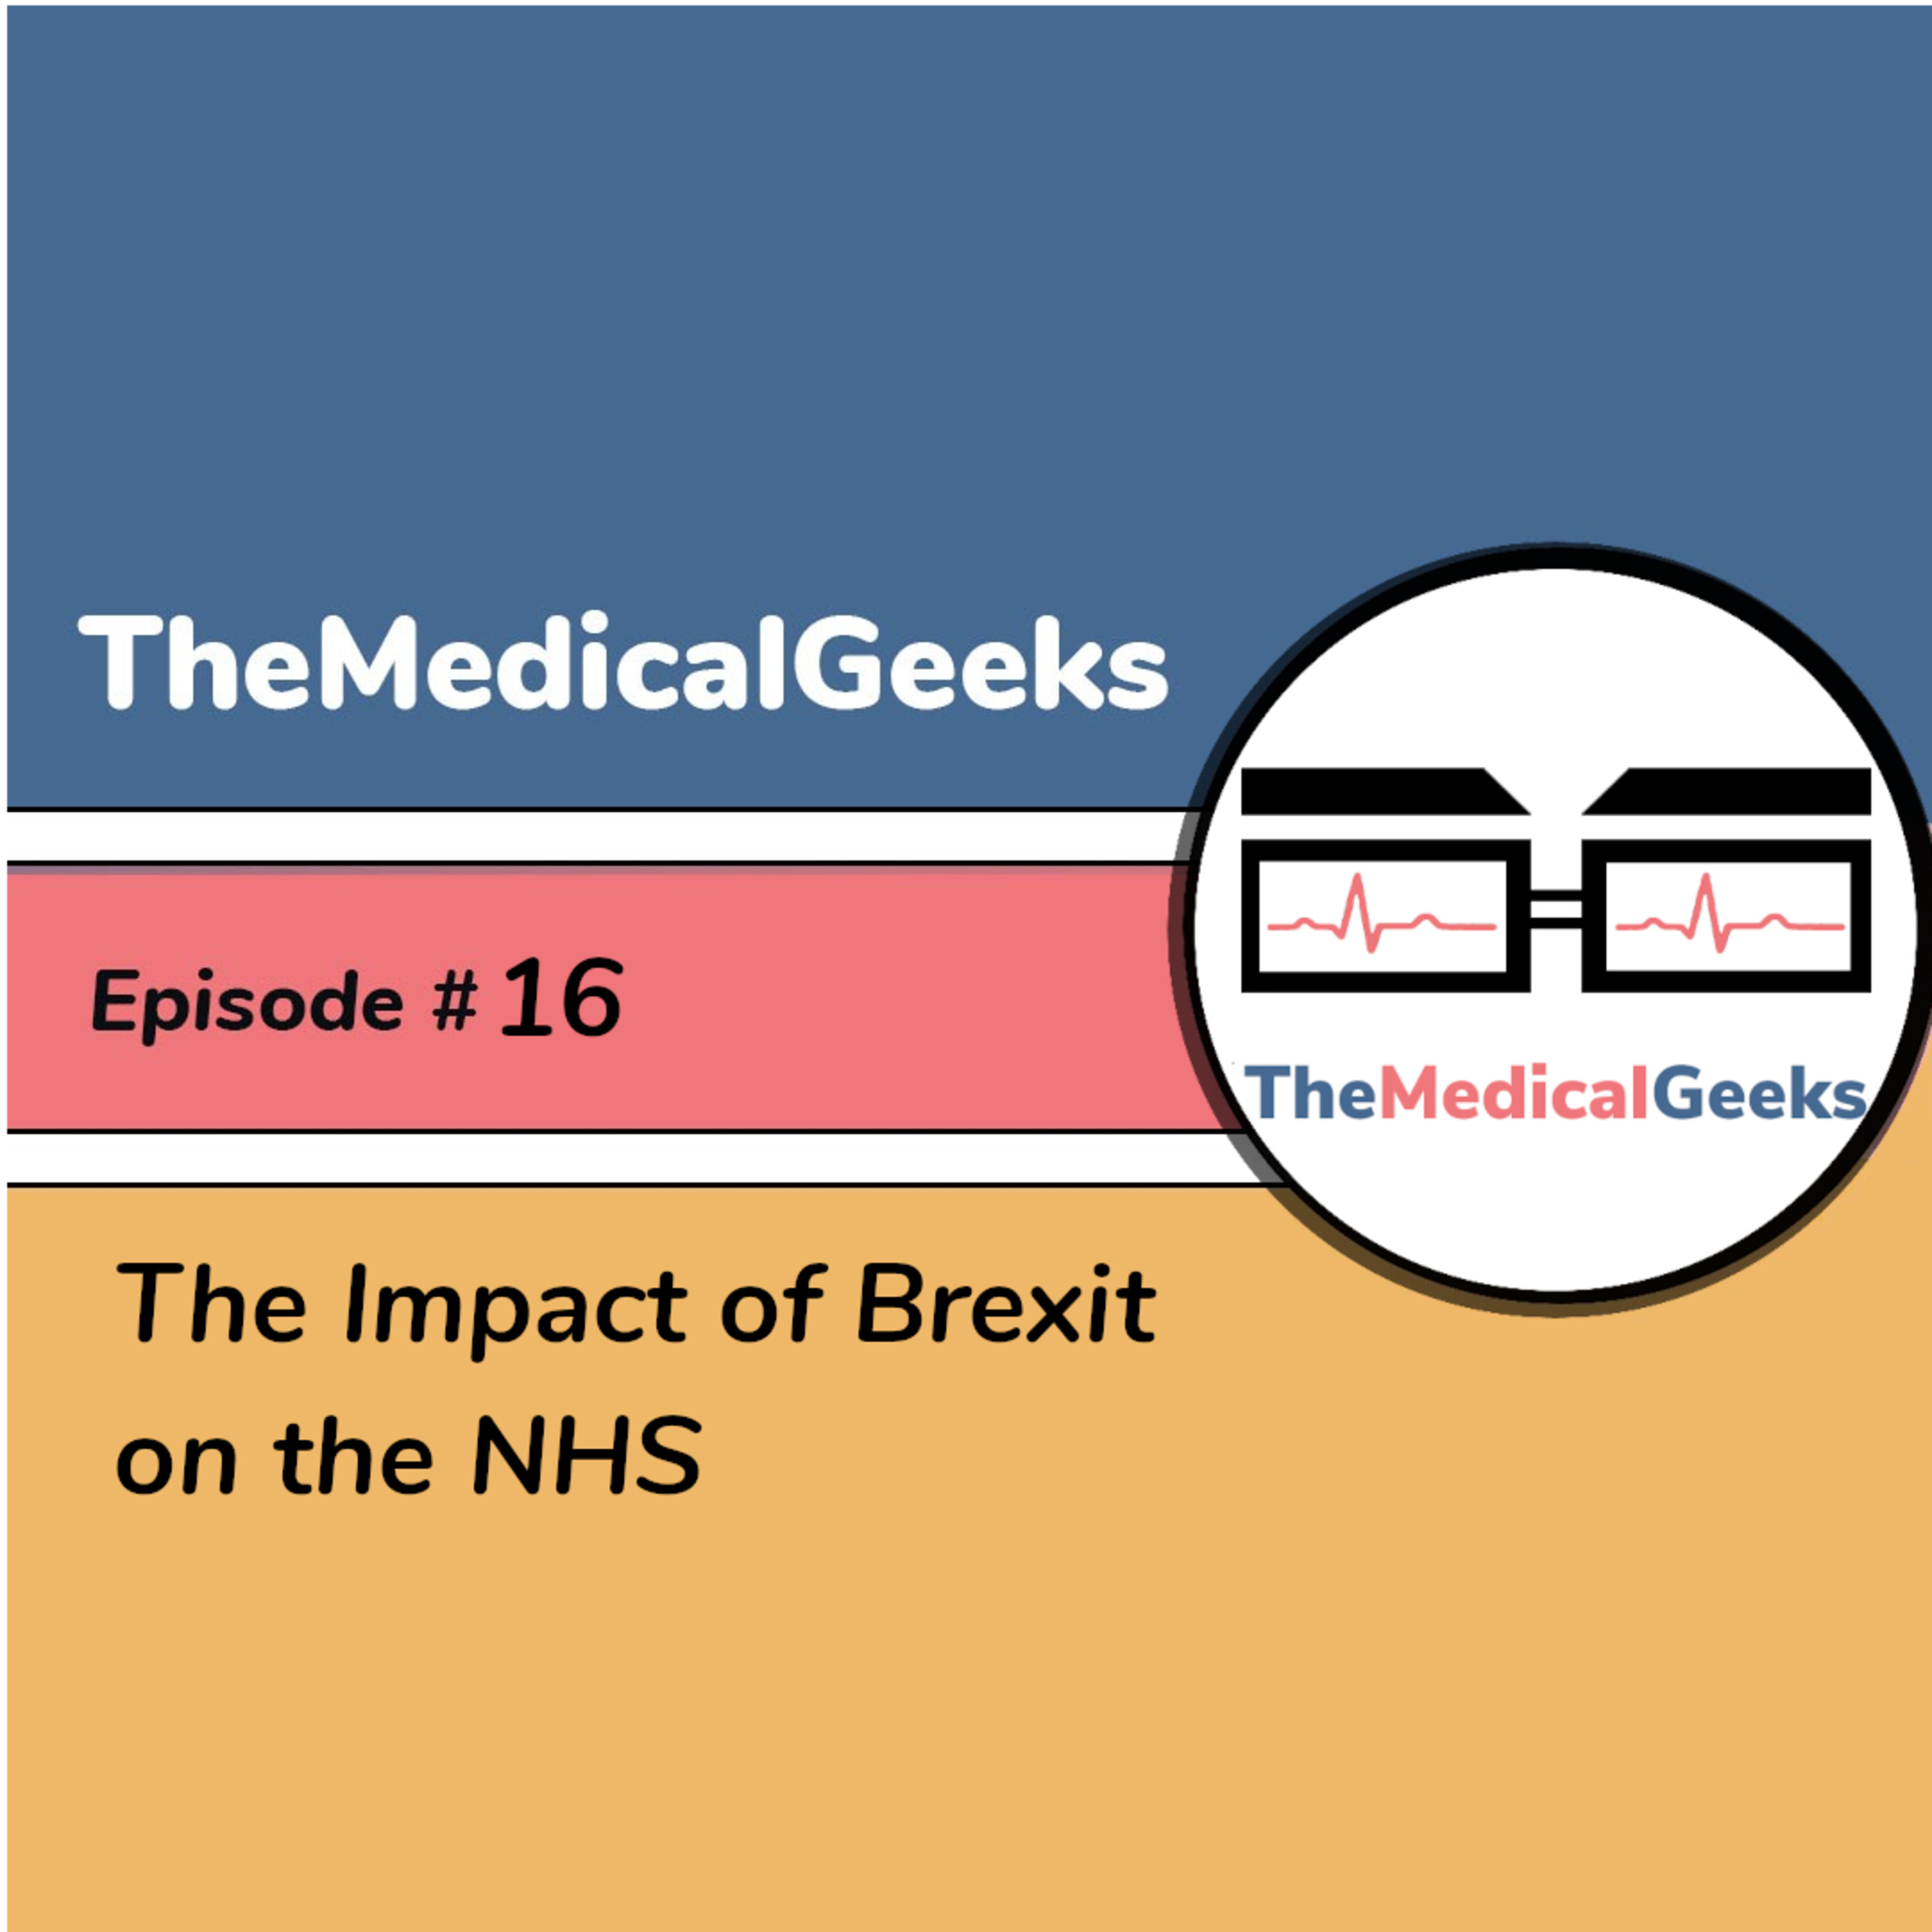 #16 Episode 16: The Impact of Brexit on the NHS